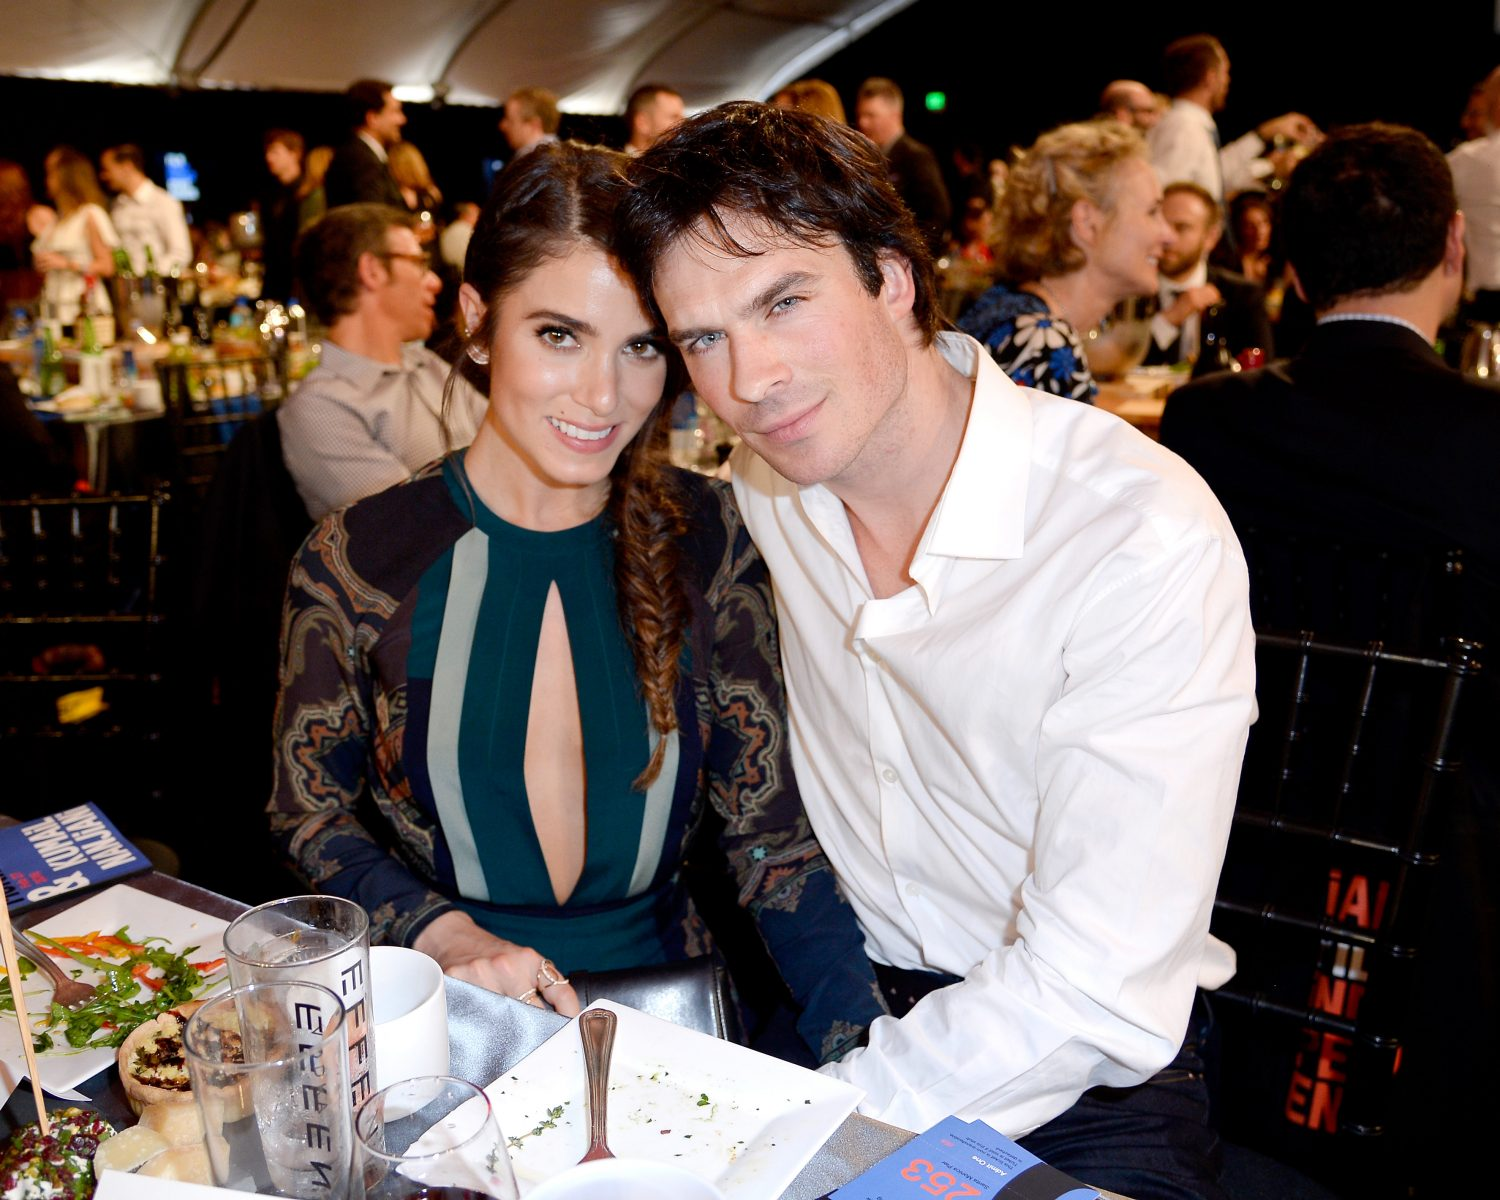 Nikki reed and ian somerhalder celebrate 2nd wedding anniversary nikki reed ian somerhalder junglespirit Images